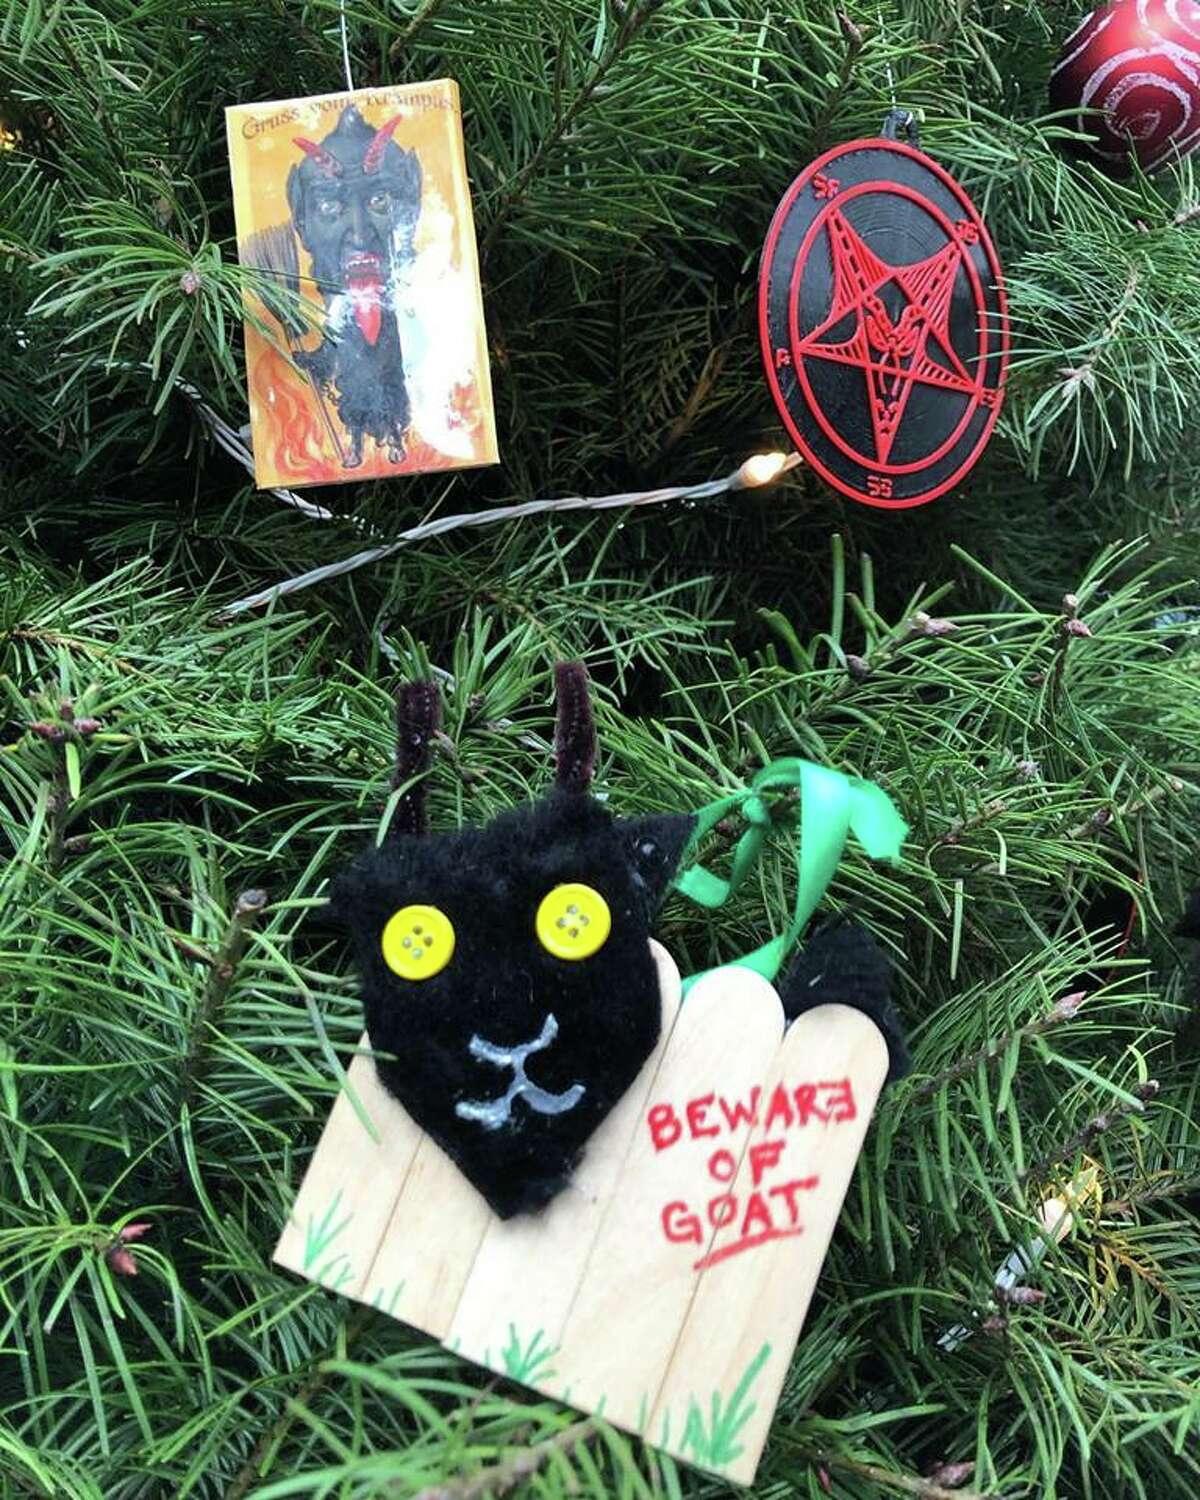 The Satanic Bay Area group said Tuesday that a number of its ornaments were taken from their tree at Christmas in the Park in San Jose over the weekend. The group handmade about 140 of the ornaments, and expect they will have to replenish the tree in two weeks if items continue to be stolen.